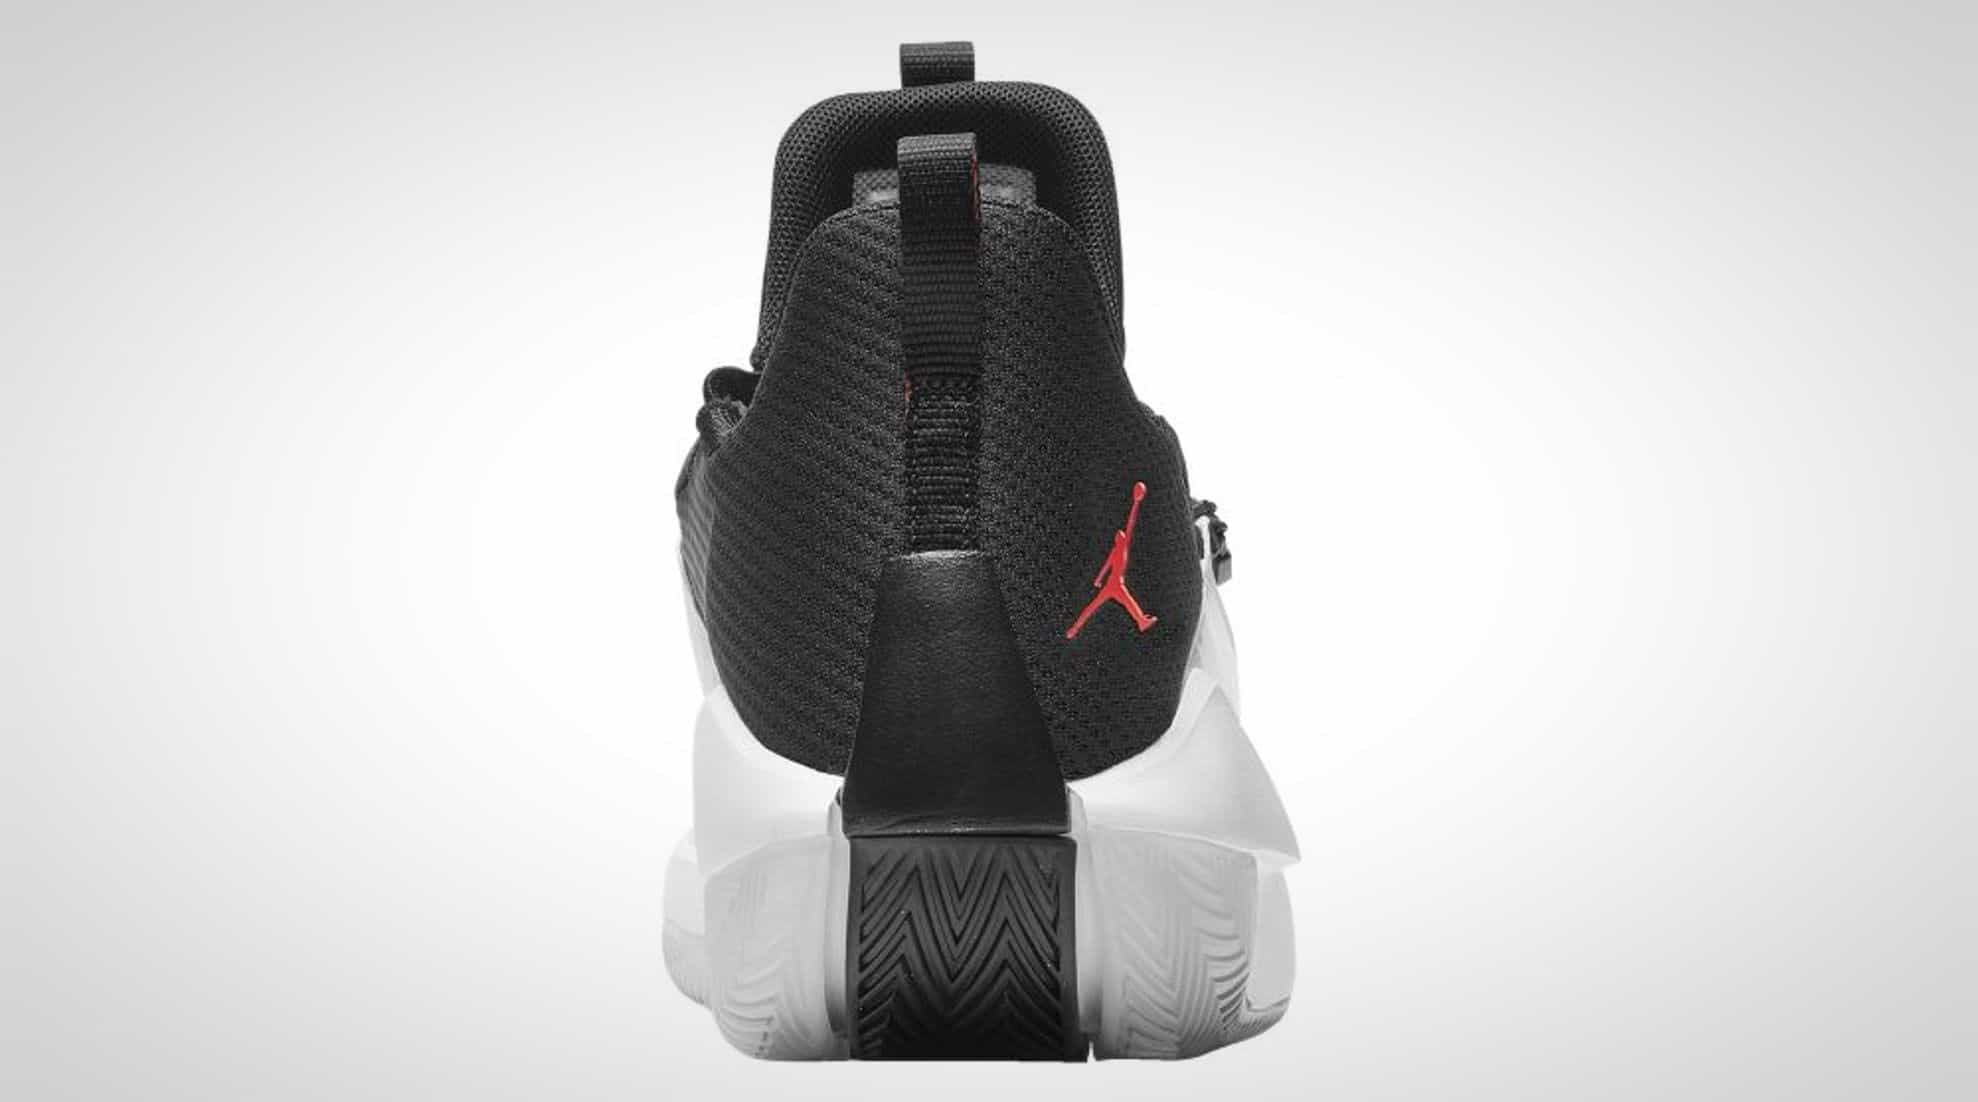 Jordan Jumpman Hustle Basketball Shoe Review - BestOutdoorBasketball 434083d2db9af